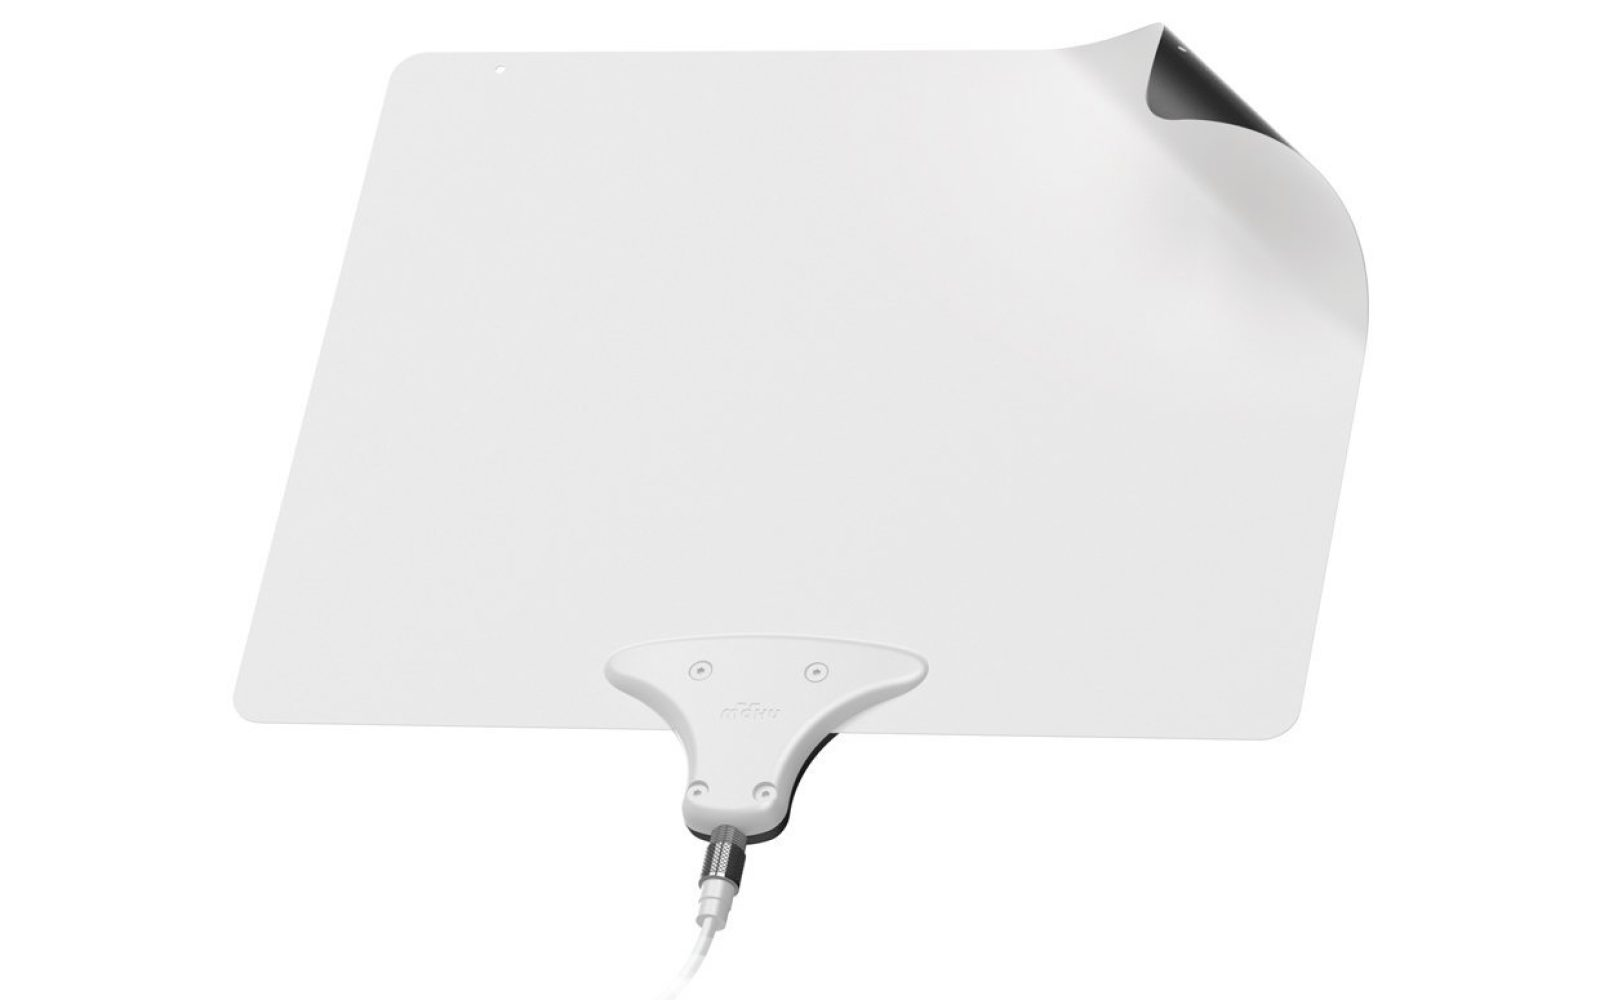 Cut the cord! Mohu Leaf 50 Ultimate HDTV Antenna (open box): $30 shipped (Orig. $90)